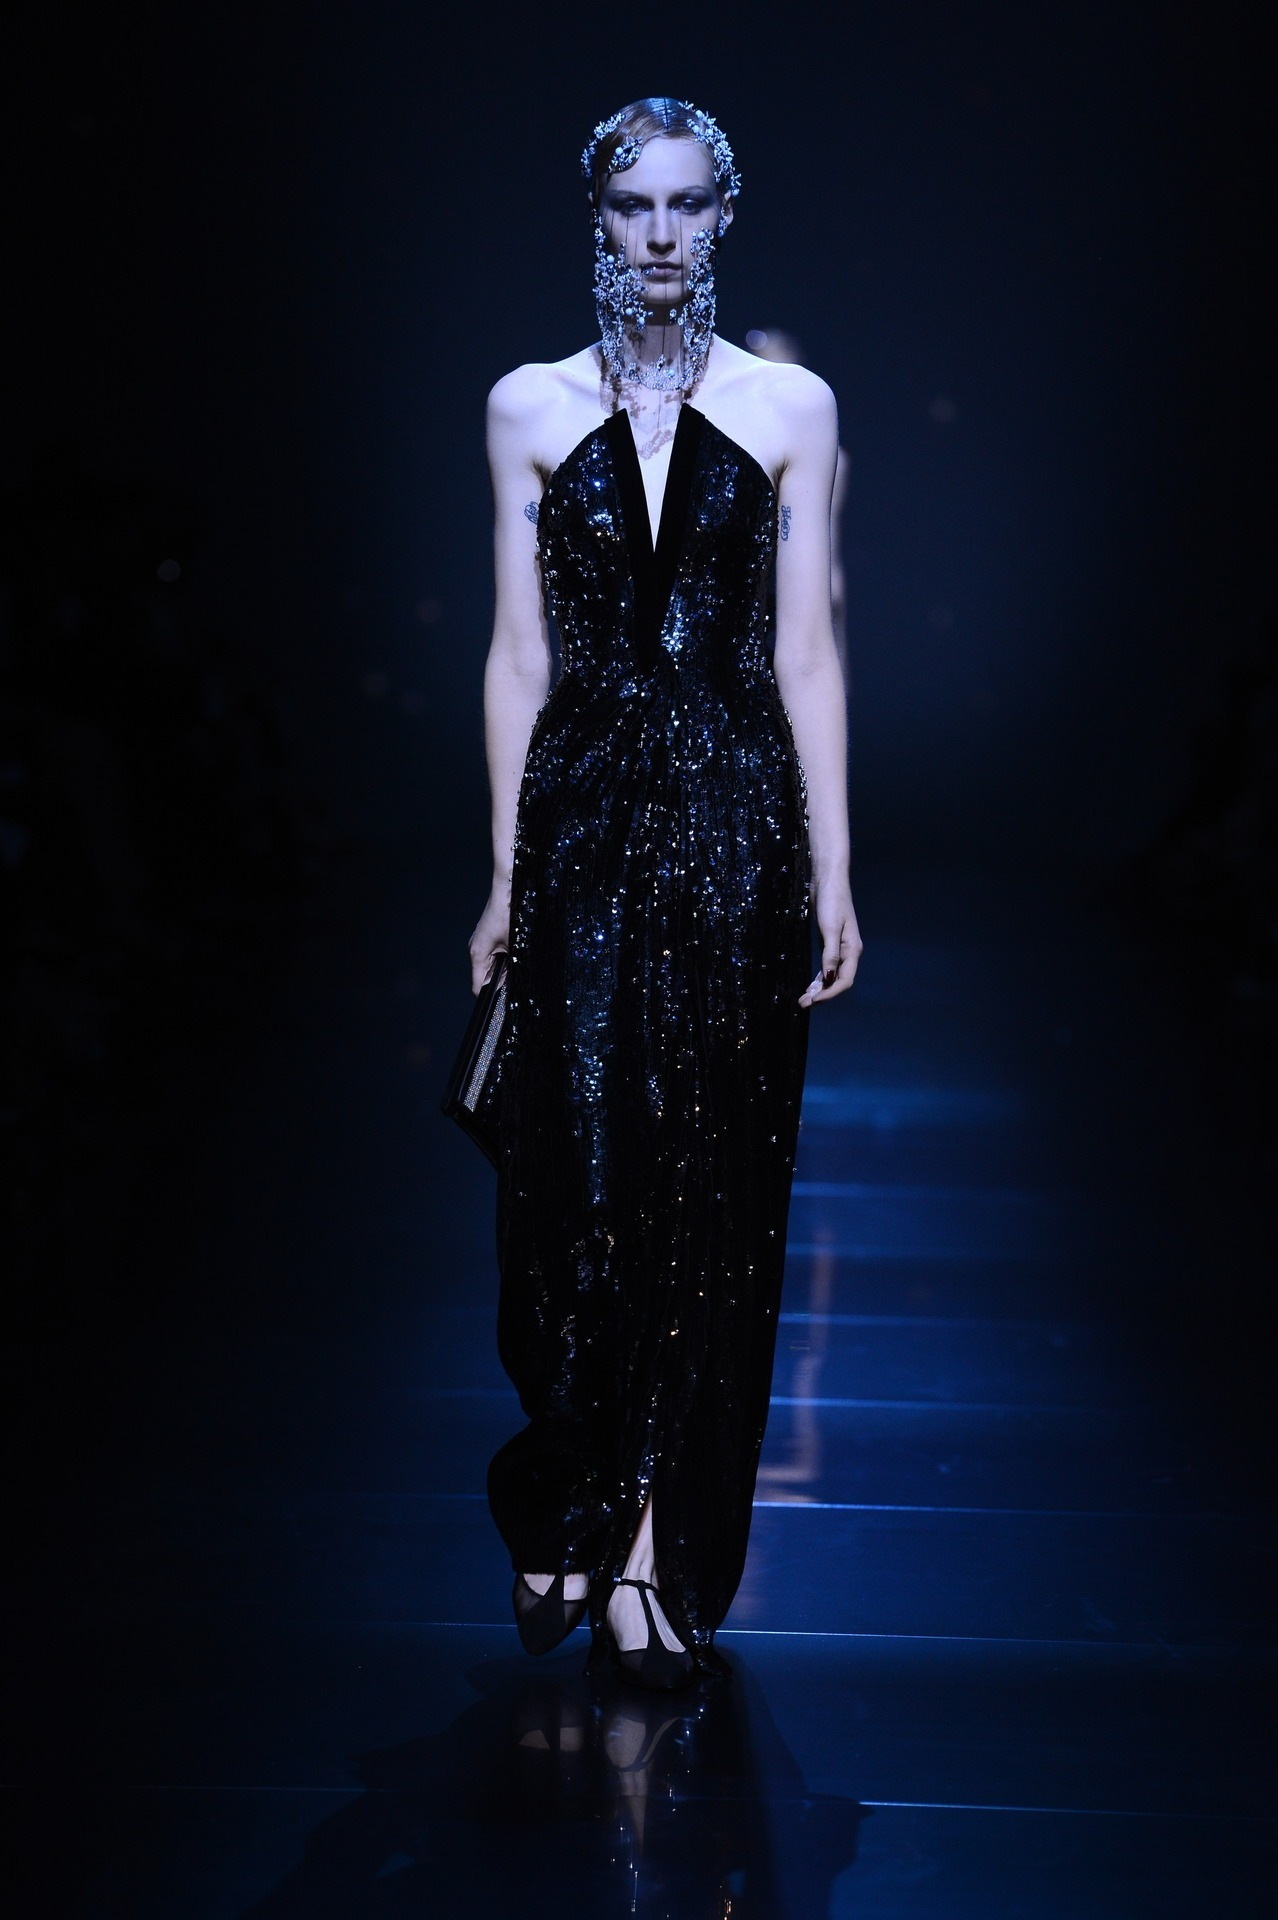 Giorgio Armani Privé - Fall 2012 / Photo Courtesy of Giorgio Armani Click here to see the entire collection!